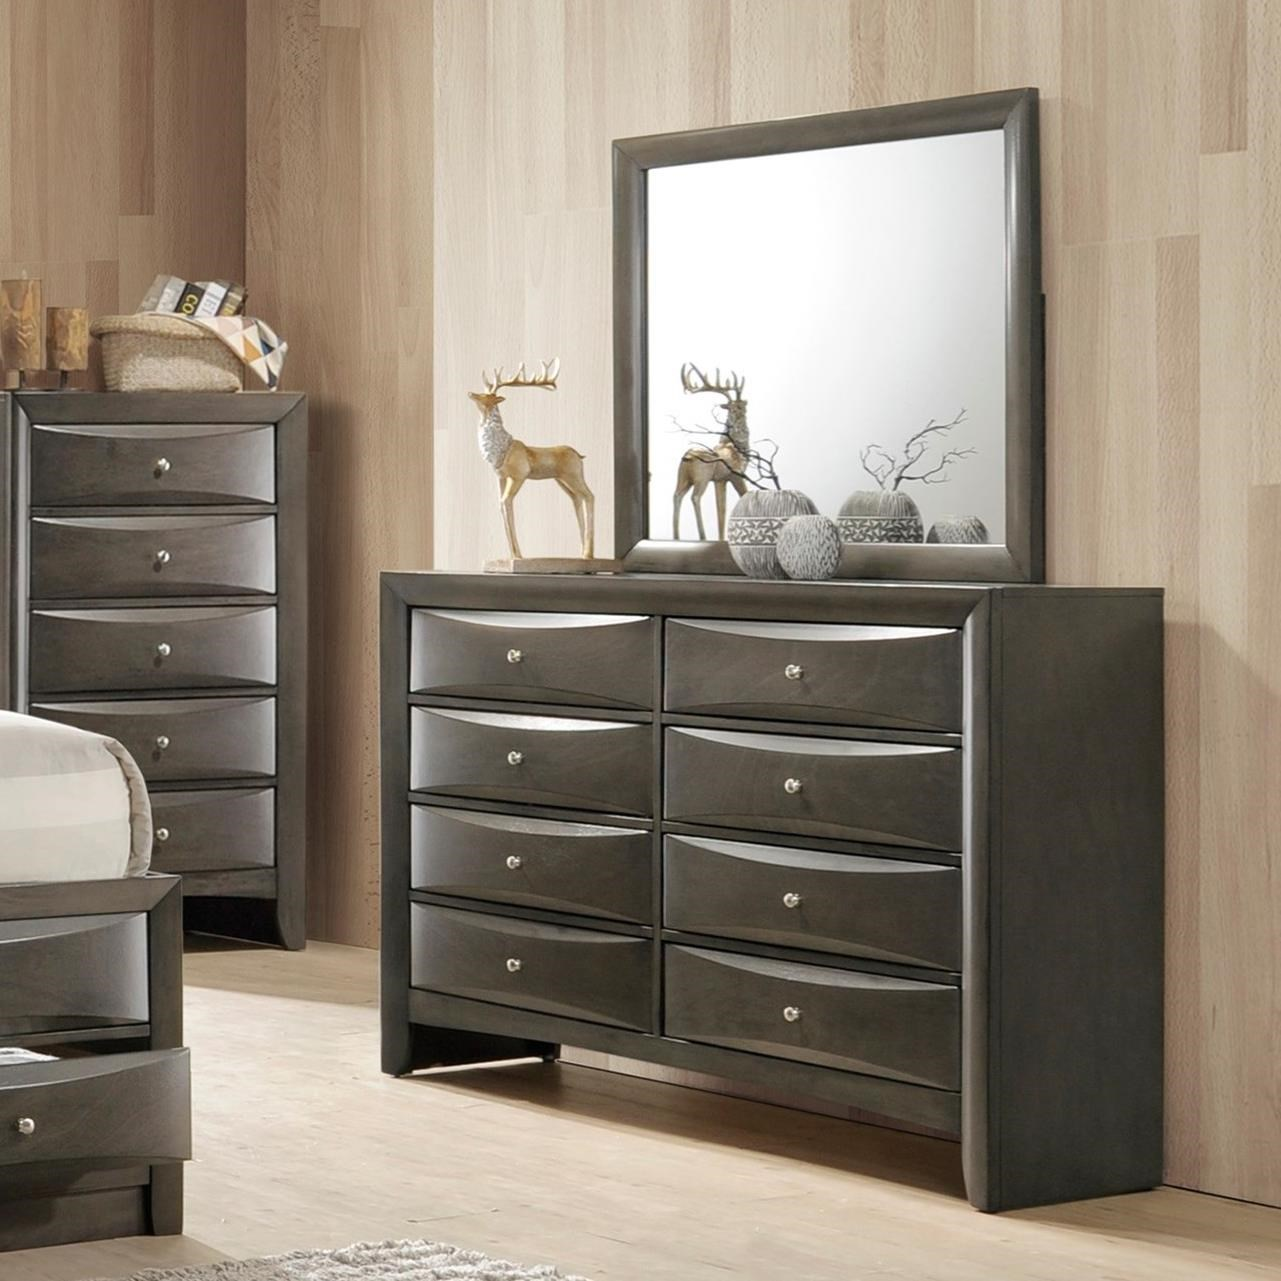 Crown Mark Emily Dresser and Mirror - Item Number: B4270-1+B4270-11